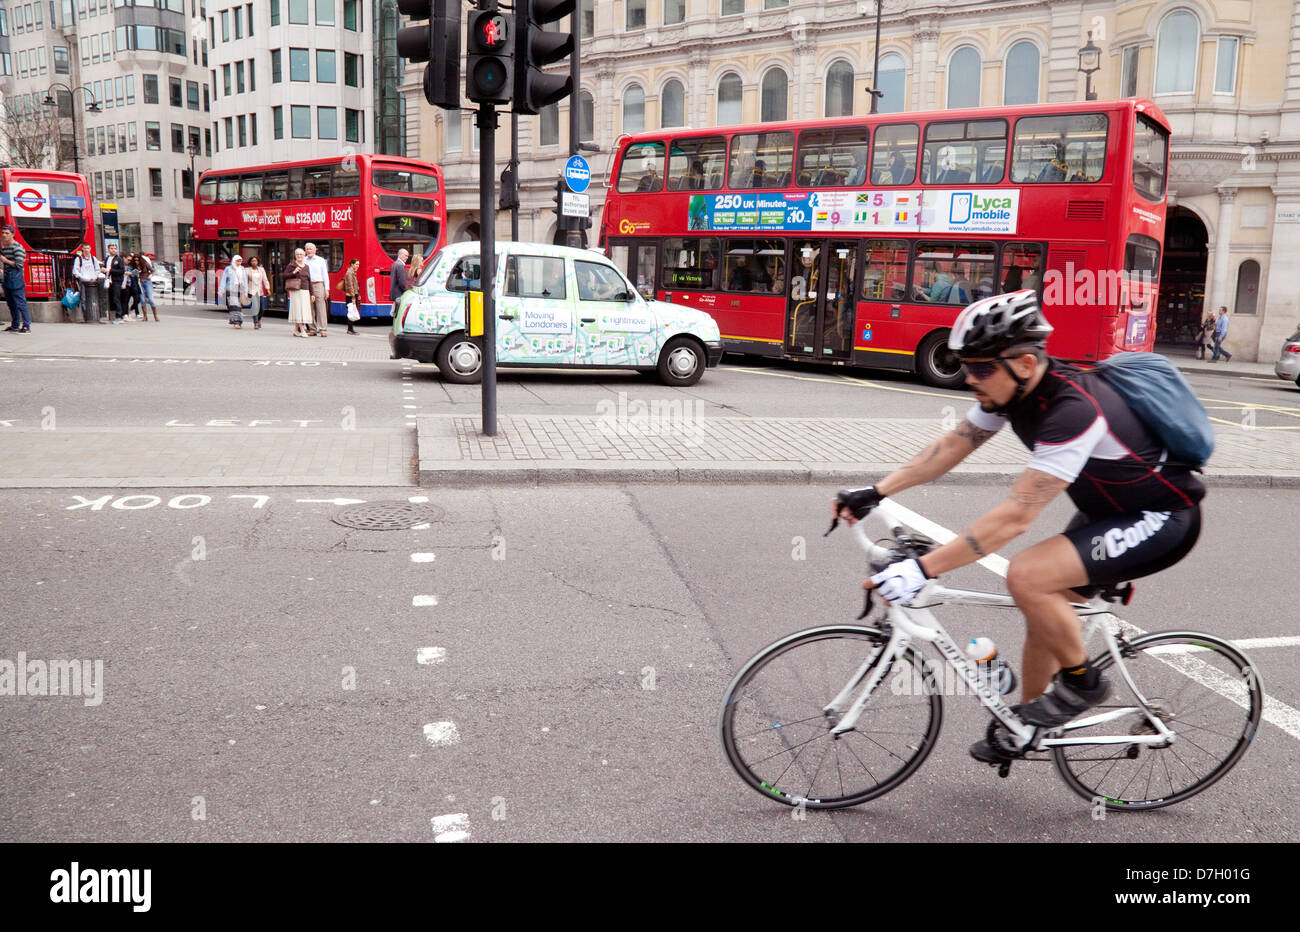 London cycling - A cyclist cycling in Trafalgar Square, Central London city centre, England UK Stock Photo